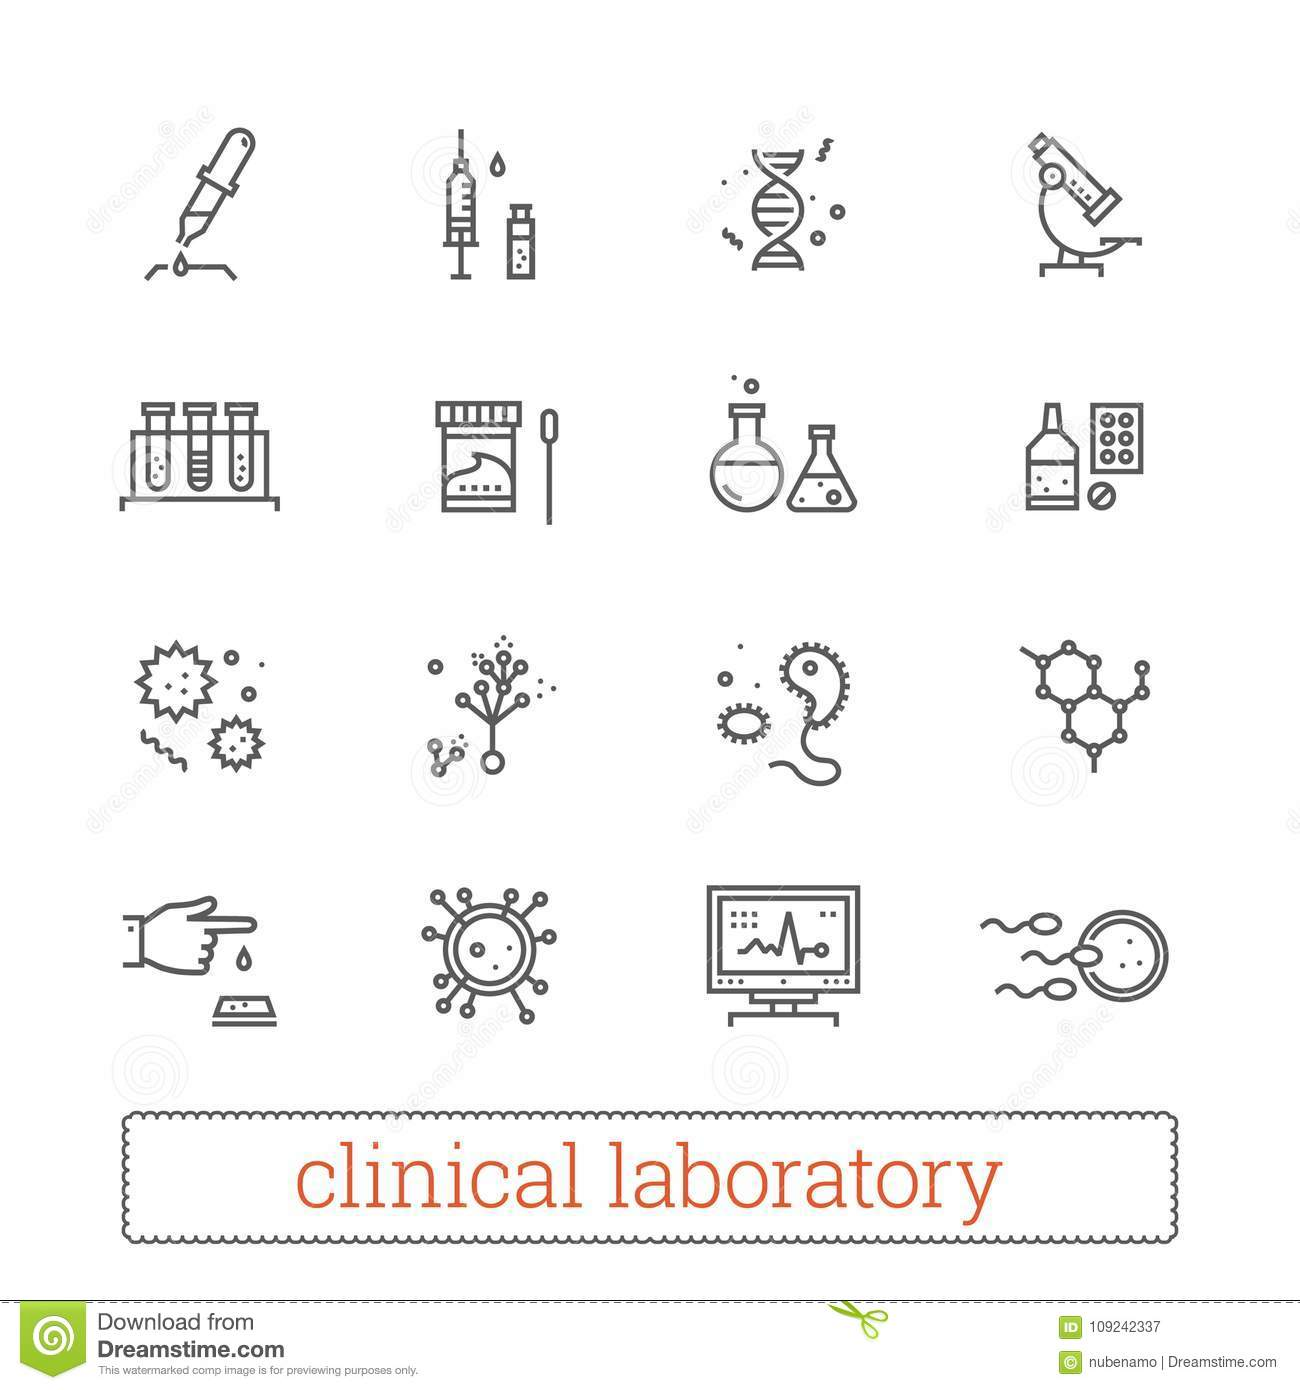 Clinical laboratory thin line icons: medicine science, virology study, microbiology assay, genetics, medical equipment.